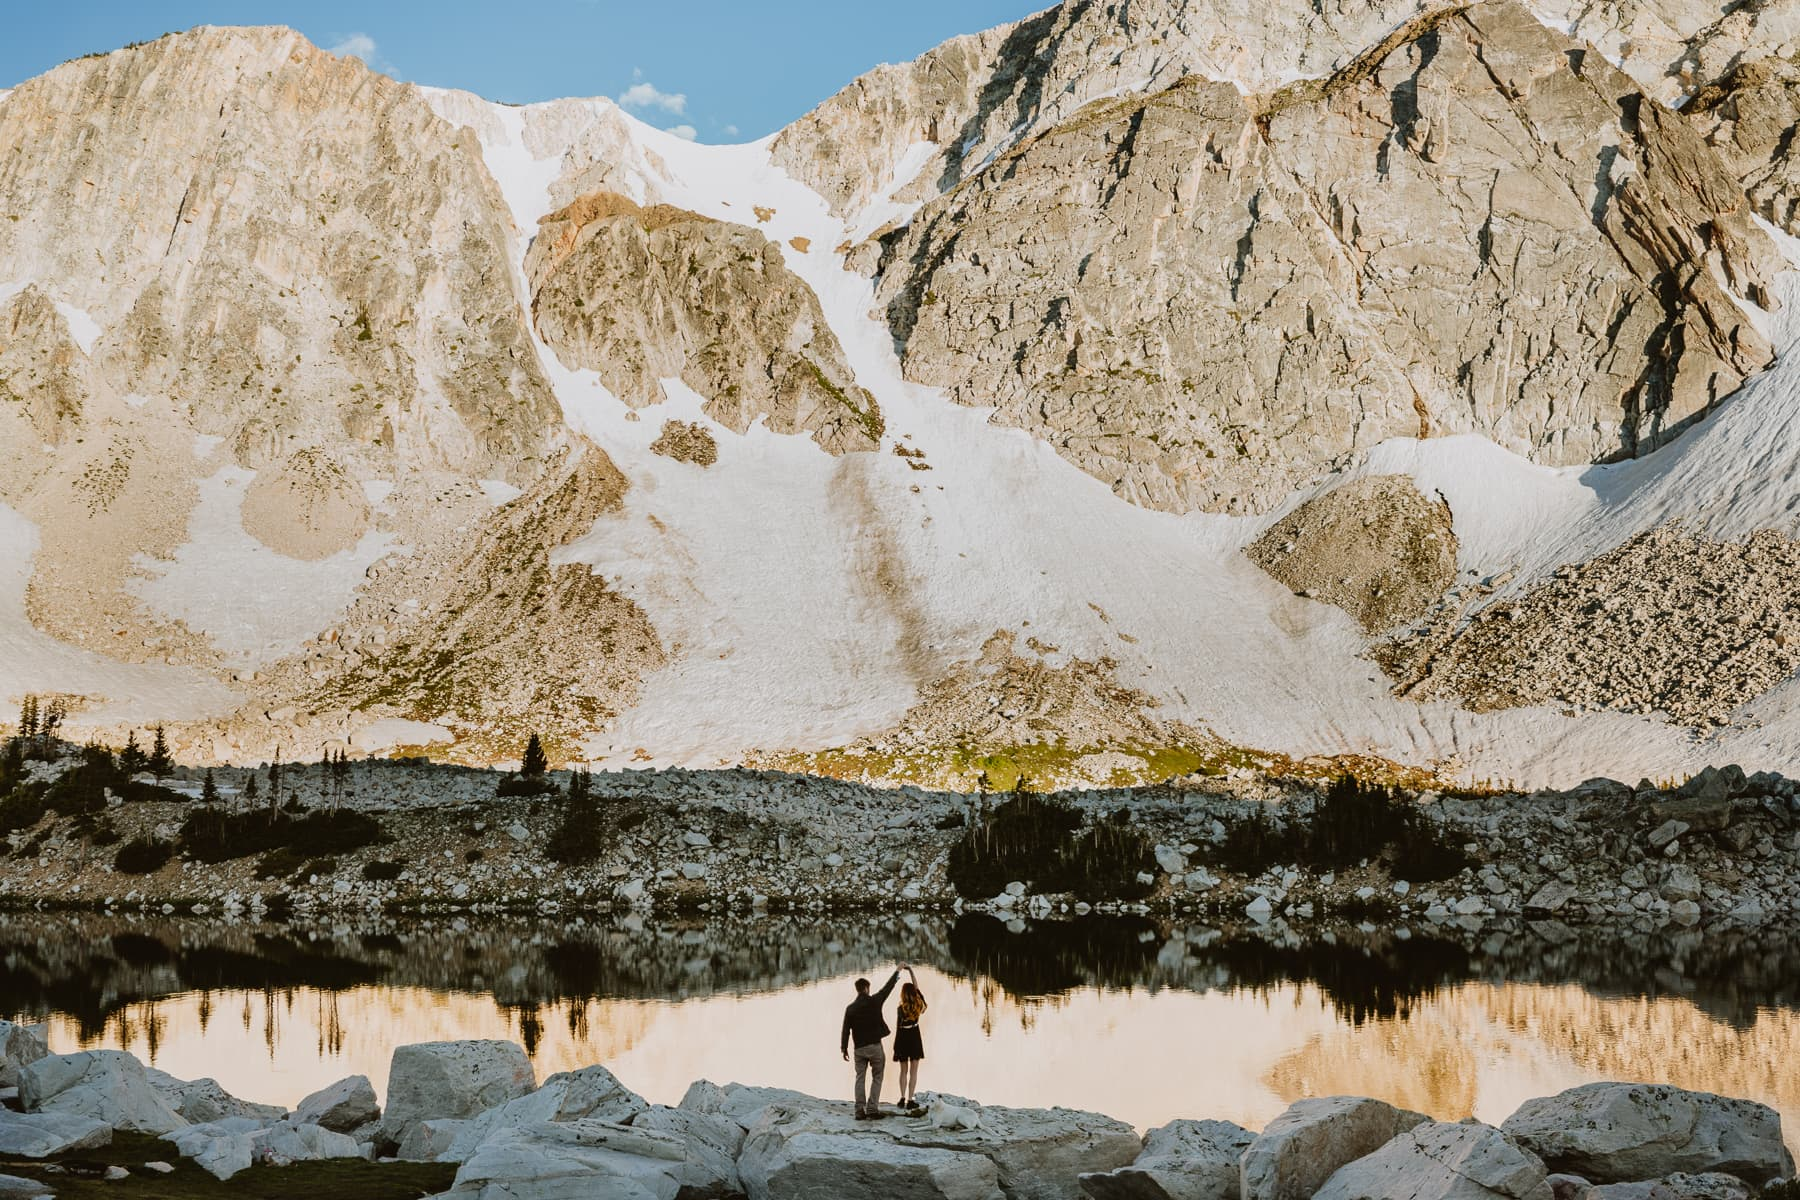 One of the best places to elope near Colorado is this reflective lake